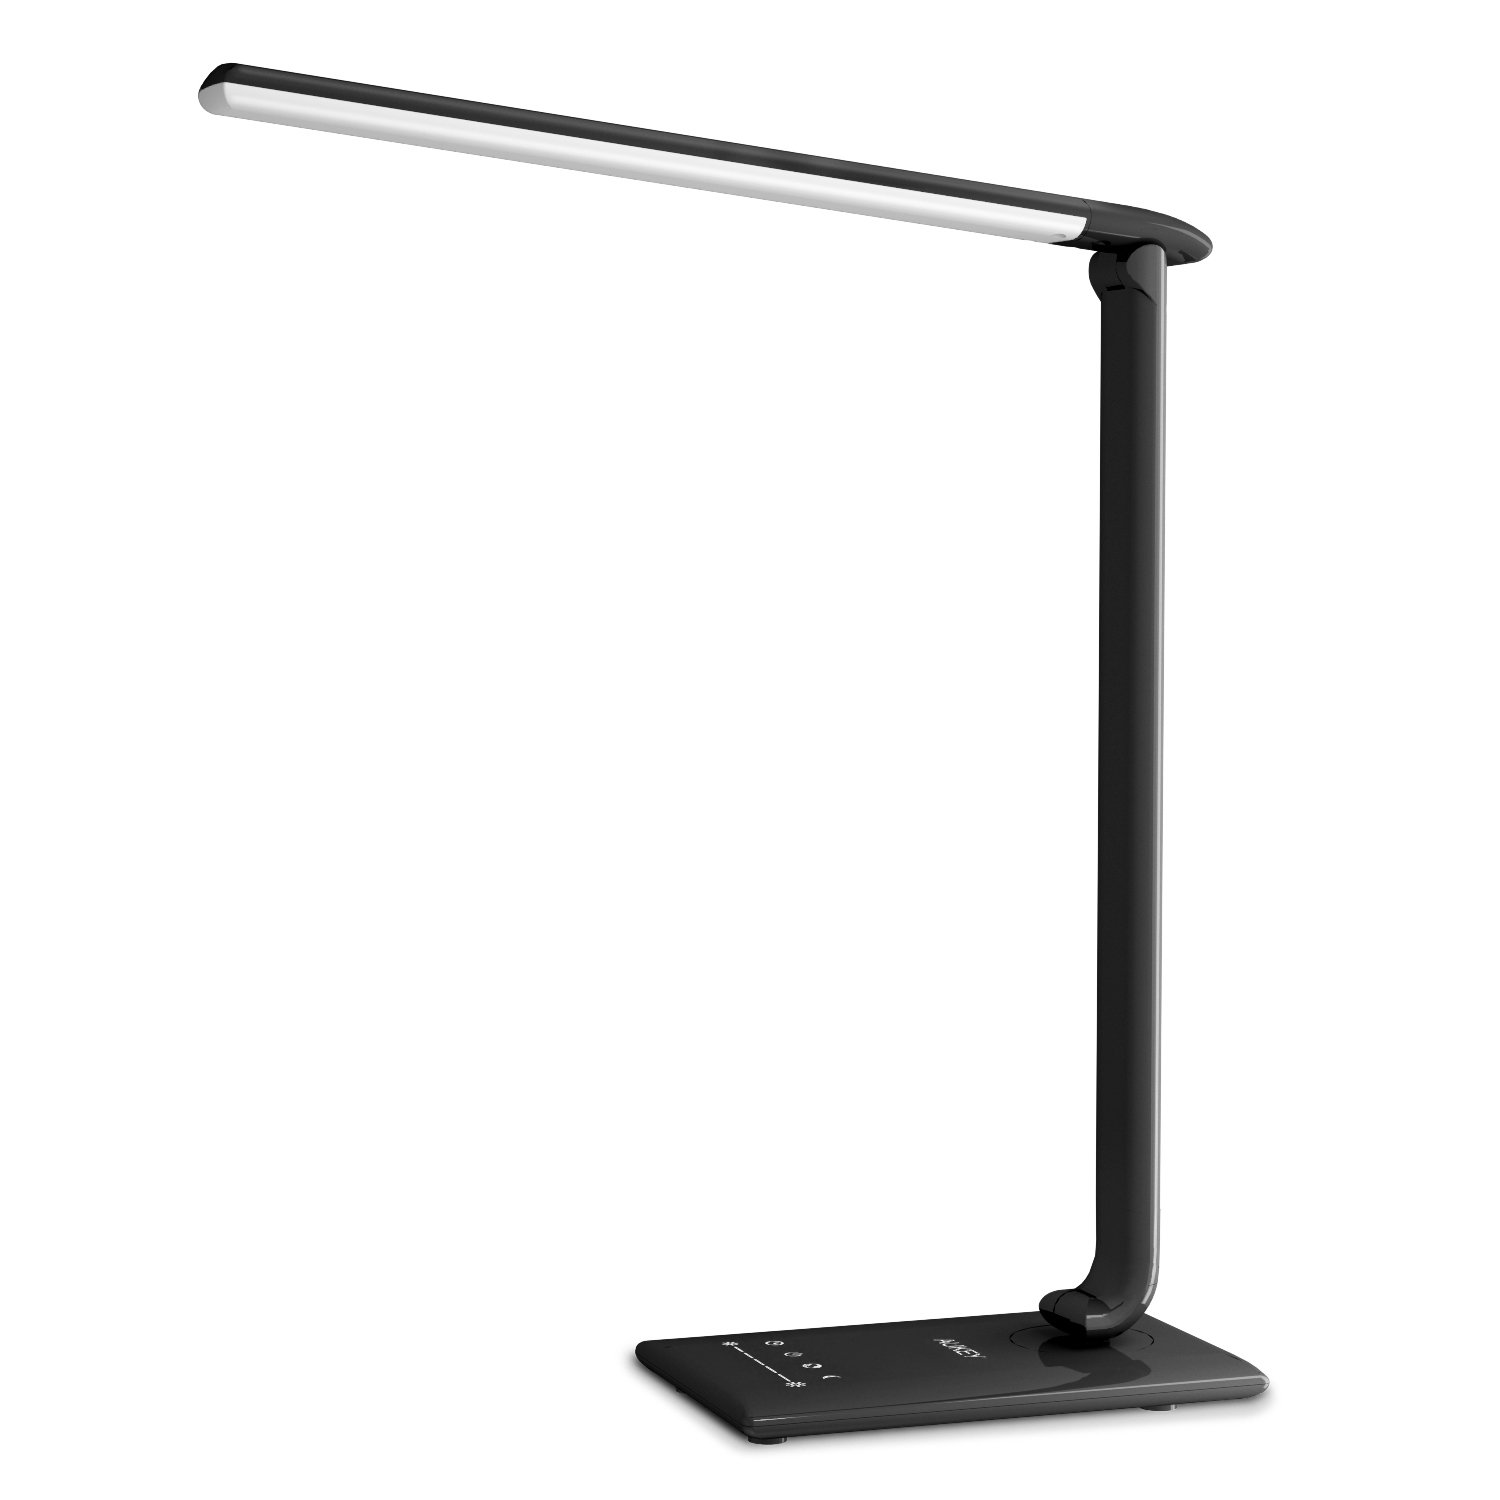 AUKEY Reading Lamp, 12W Dimmable LED Desk Lamp, Office Table Lamps with USB Charging Port, Eye-caring with 7 Level Dimmer, Timer, Touch Control